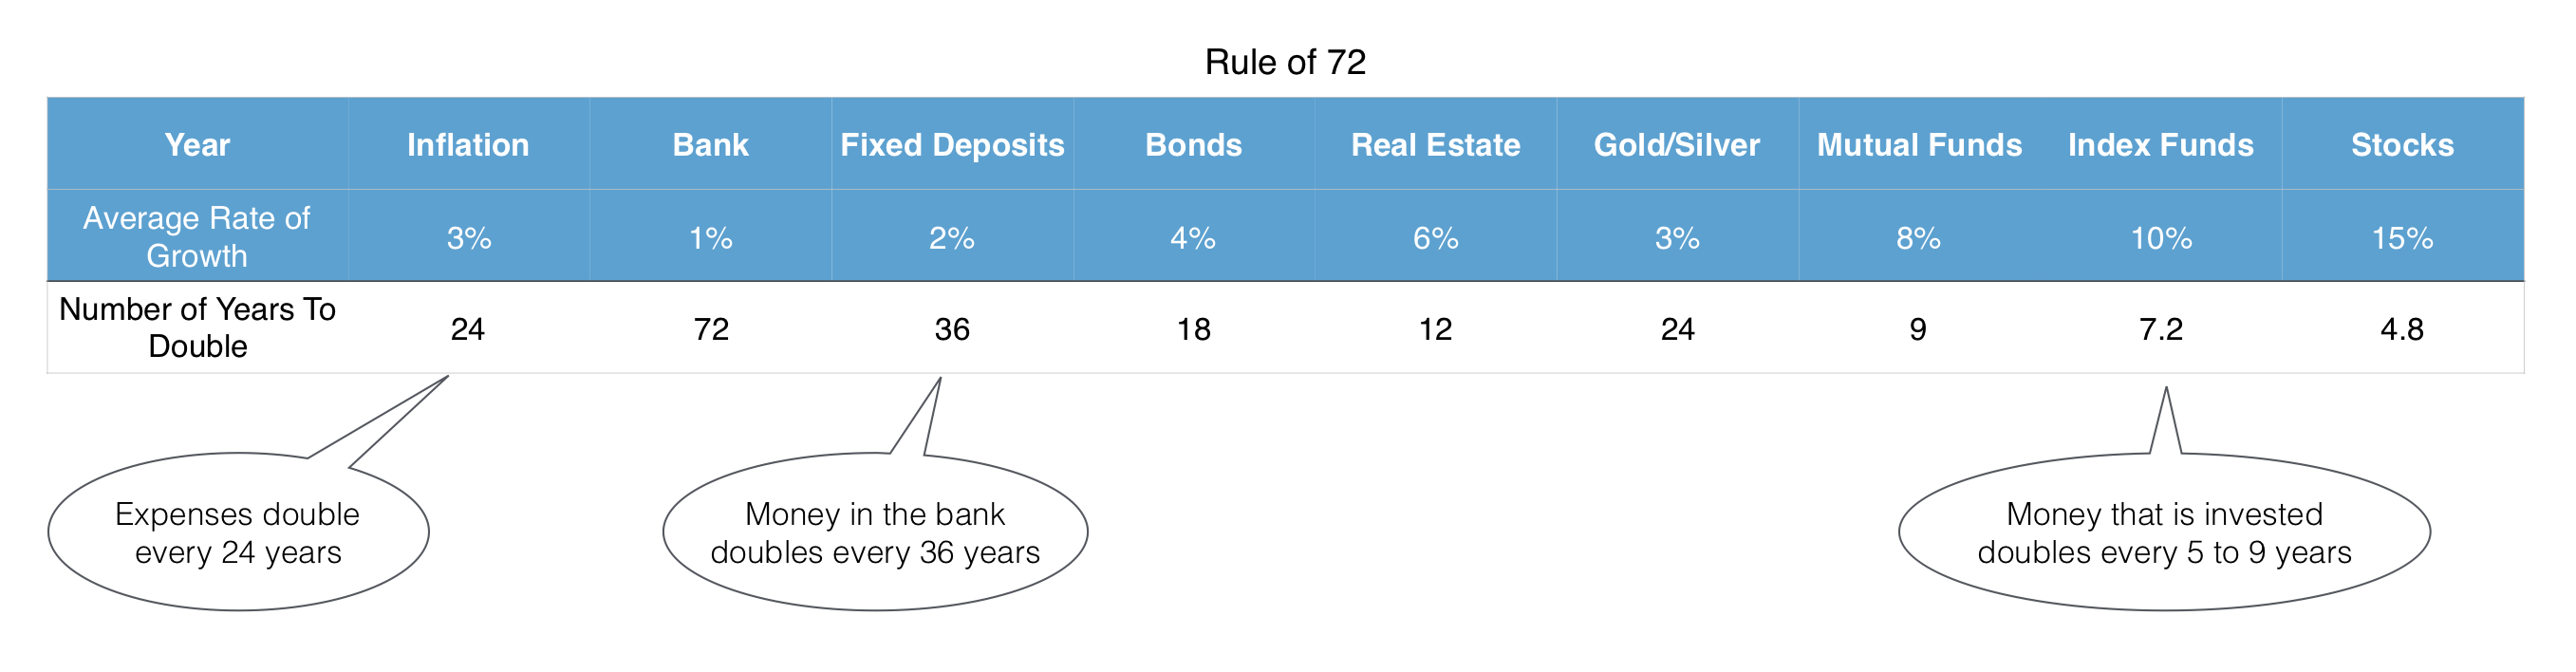 Rule of 72 - Investing